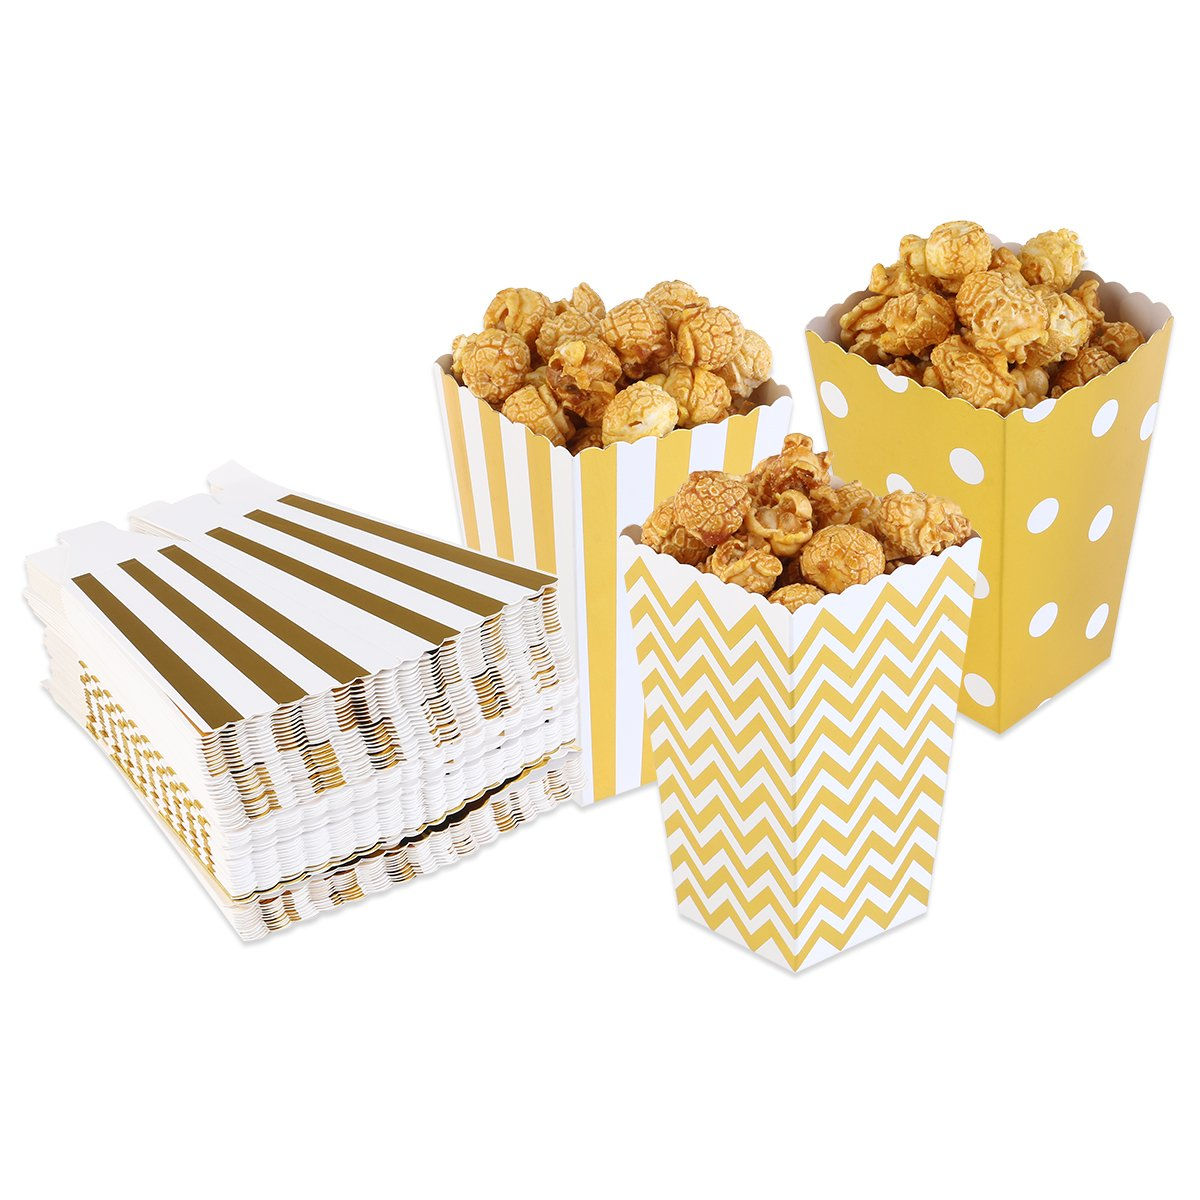 SALOCY Paper Popcorn Boxes,Party Candy Container, Movie Popcorn Favor Boxes,Gold,48 PCS